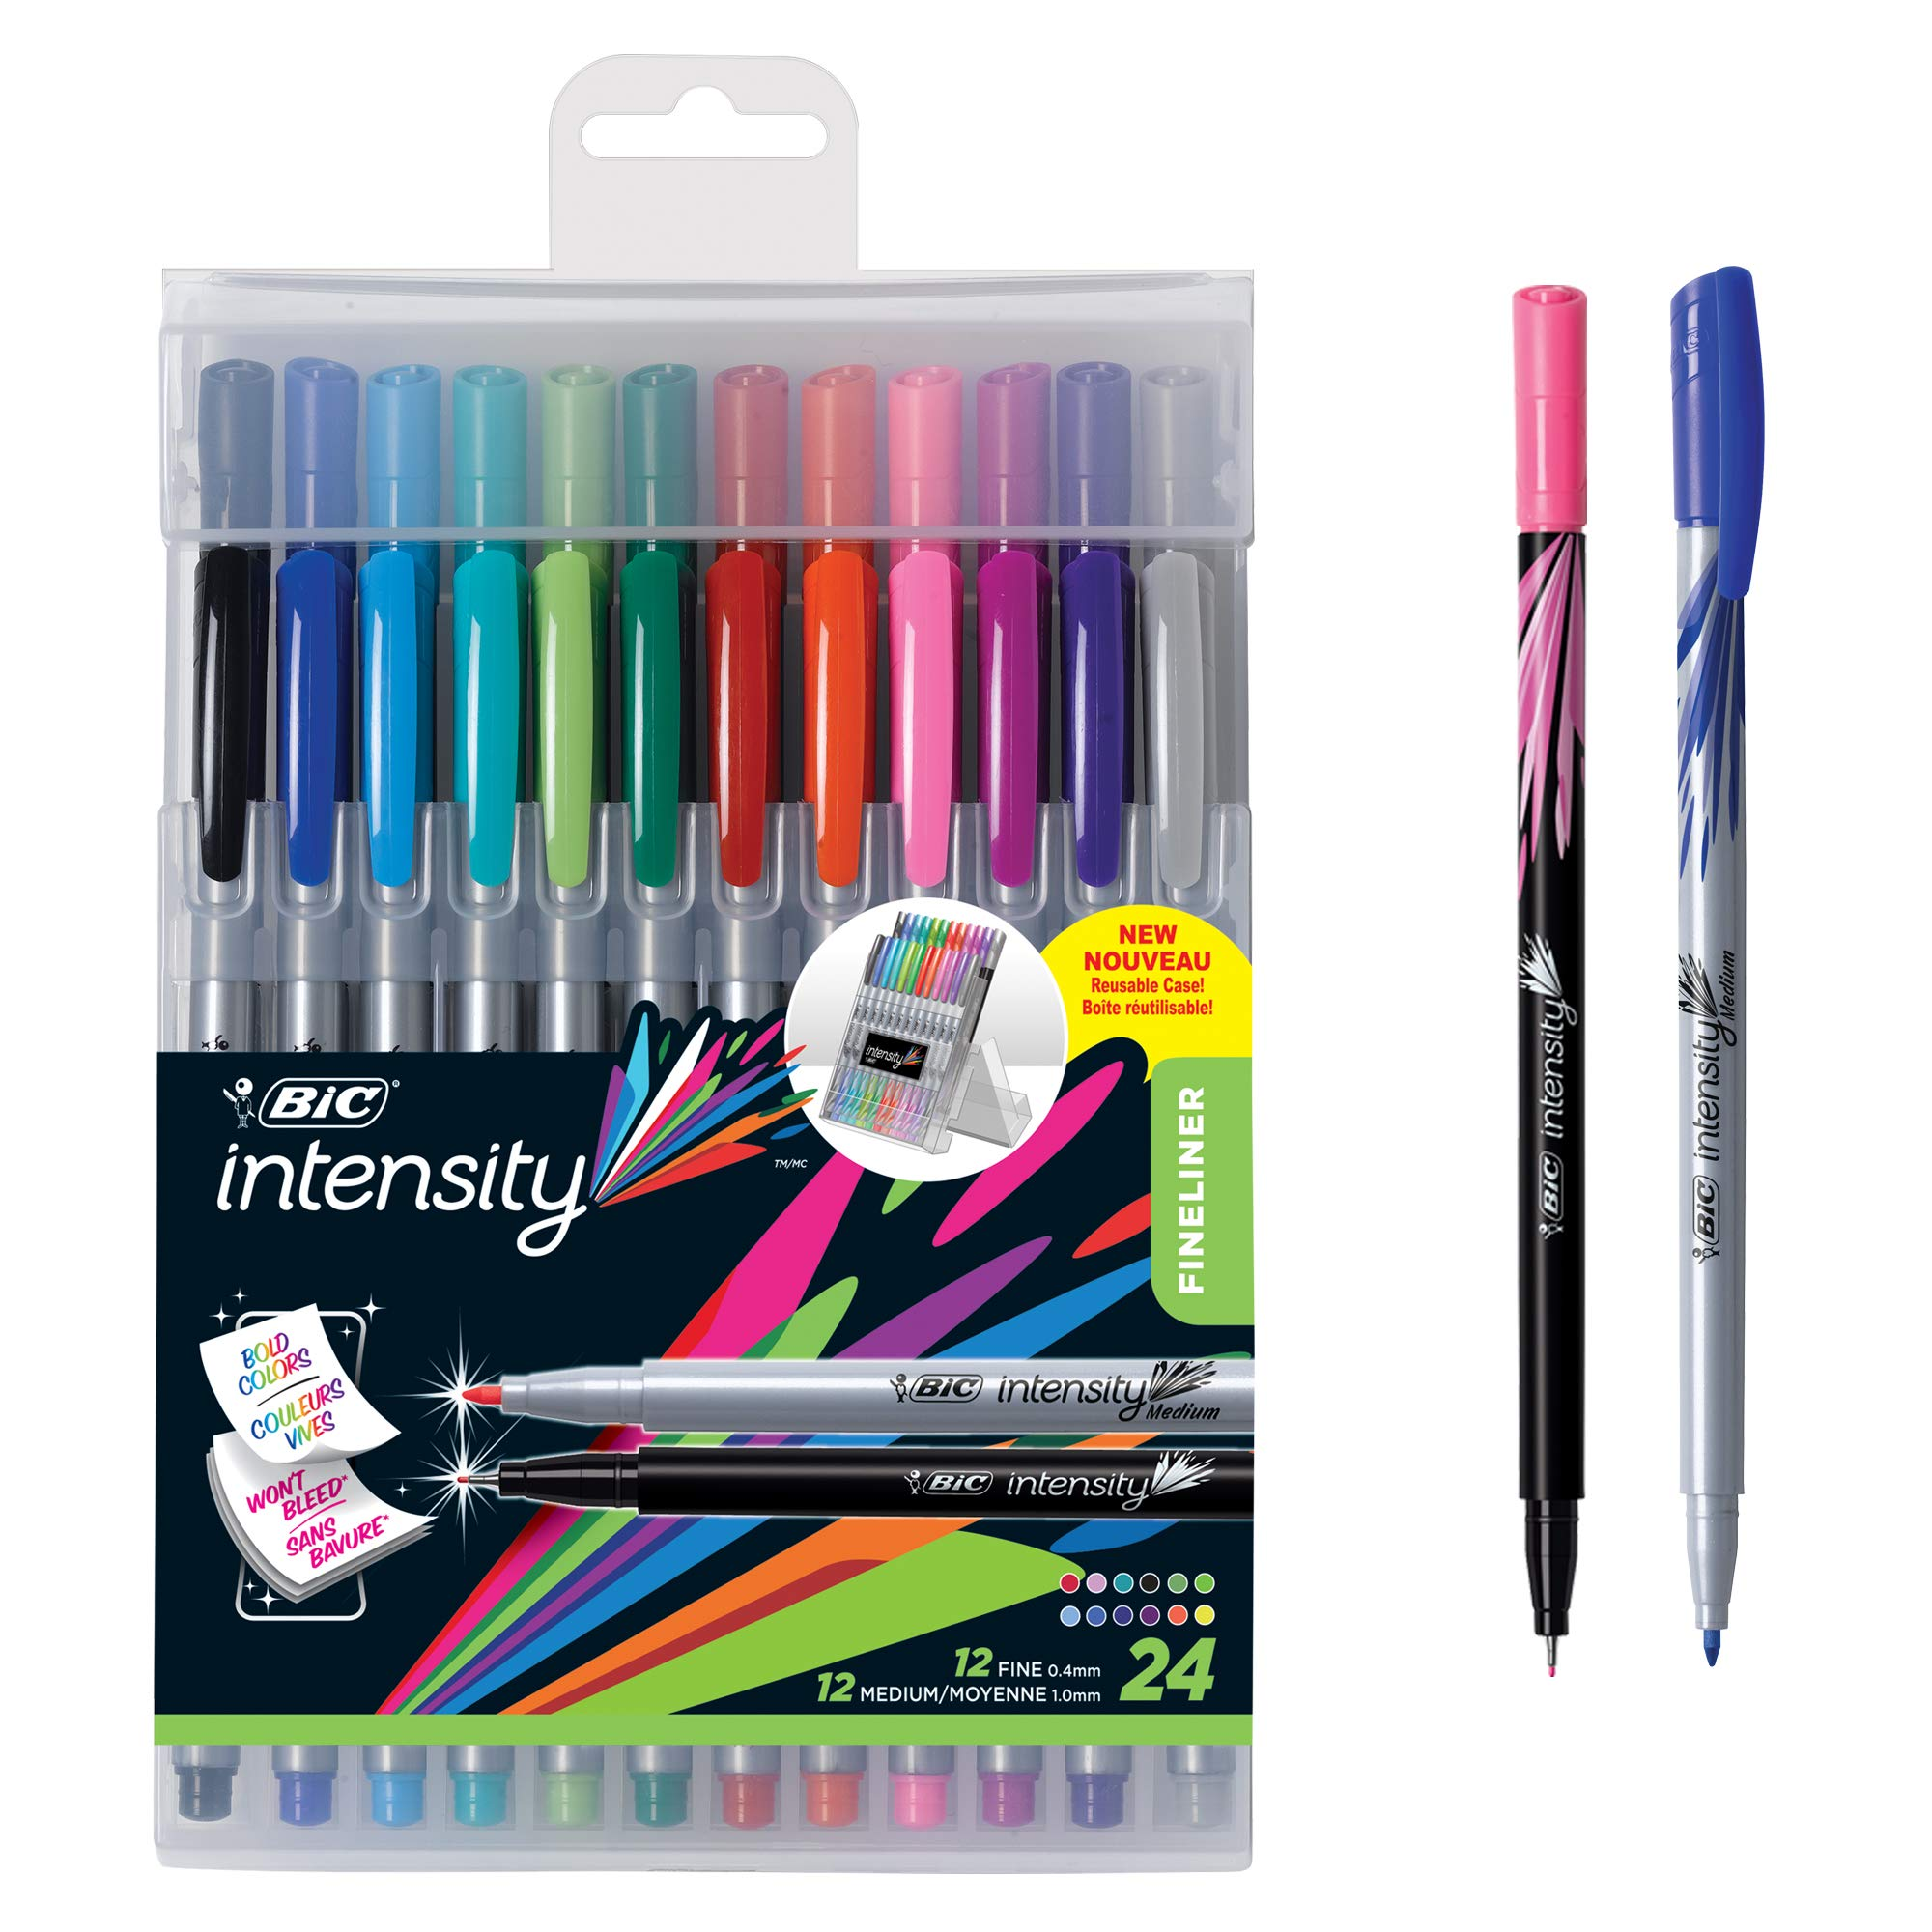 BIC Intensity Fineliner Marker Pen Easel Pack, Fine/Medium Point, Assorted Colors, 24-Count by BIC